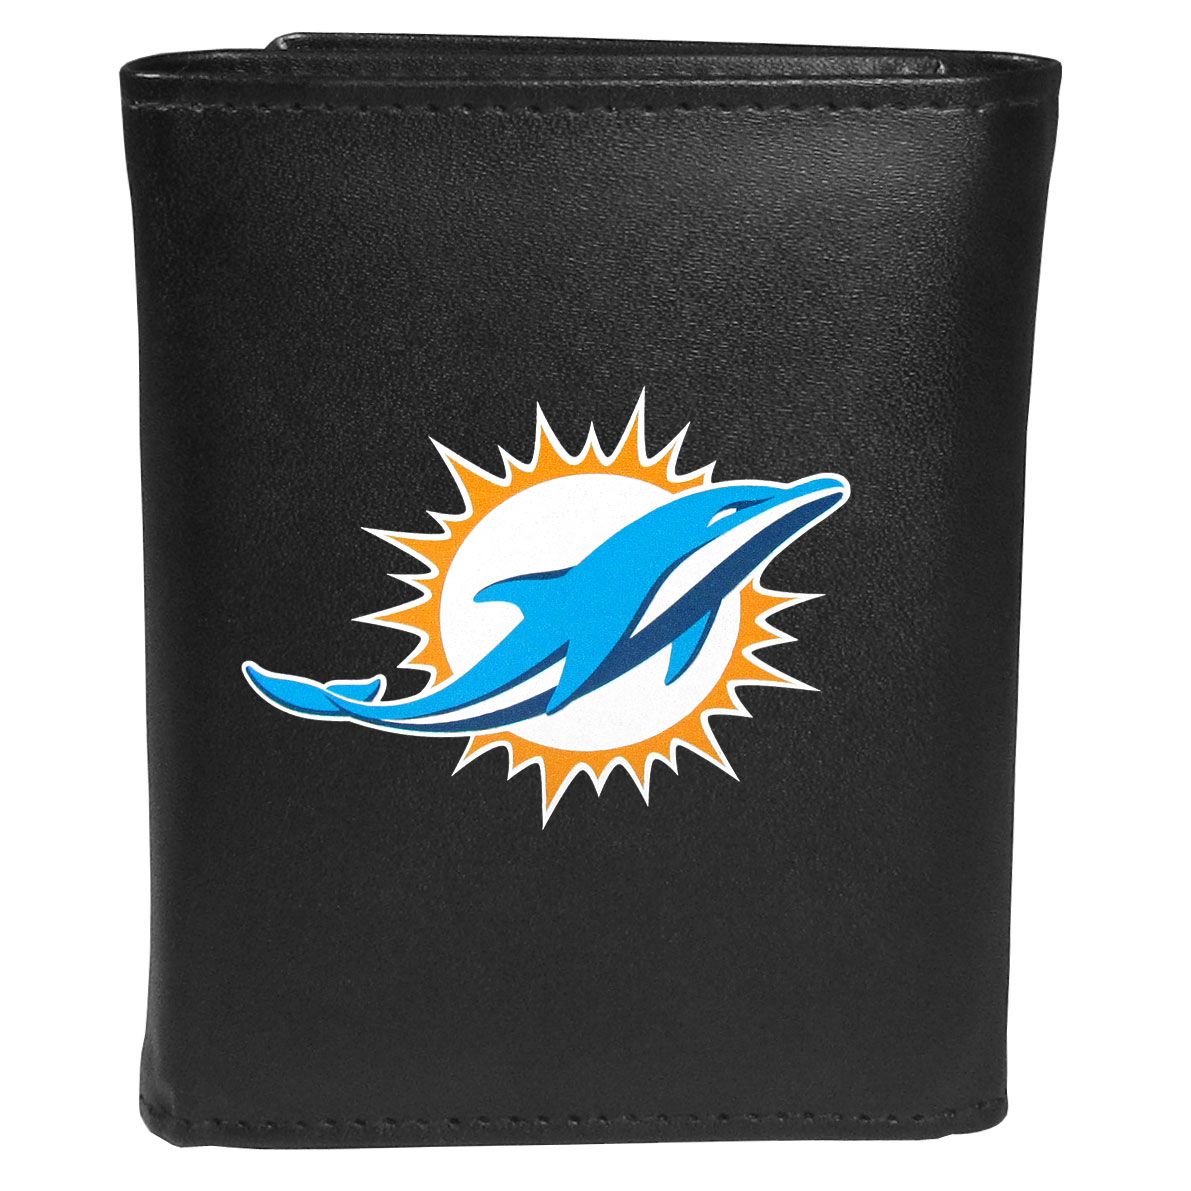 Miami Dolphins Leather Tri-fold Wallet, Large Logo - Our classic fine leather tri-fold wallet is meticulously crafted with genuine leather that will age beautifully so you will have a quality wallet for years to come. This is fan apparel at its finest. The wallet is packed with organizational  features; lots of credit card slots, large billfold pocket, and a window ID slot. The front of the wallet features an extra large Miami Dolphins printed logo.